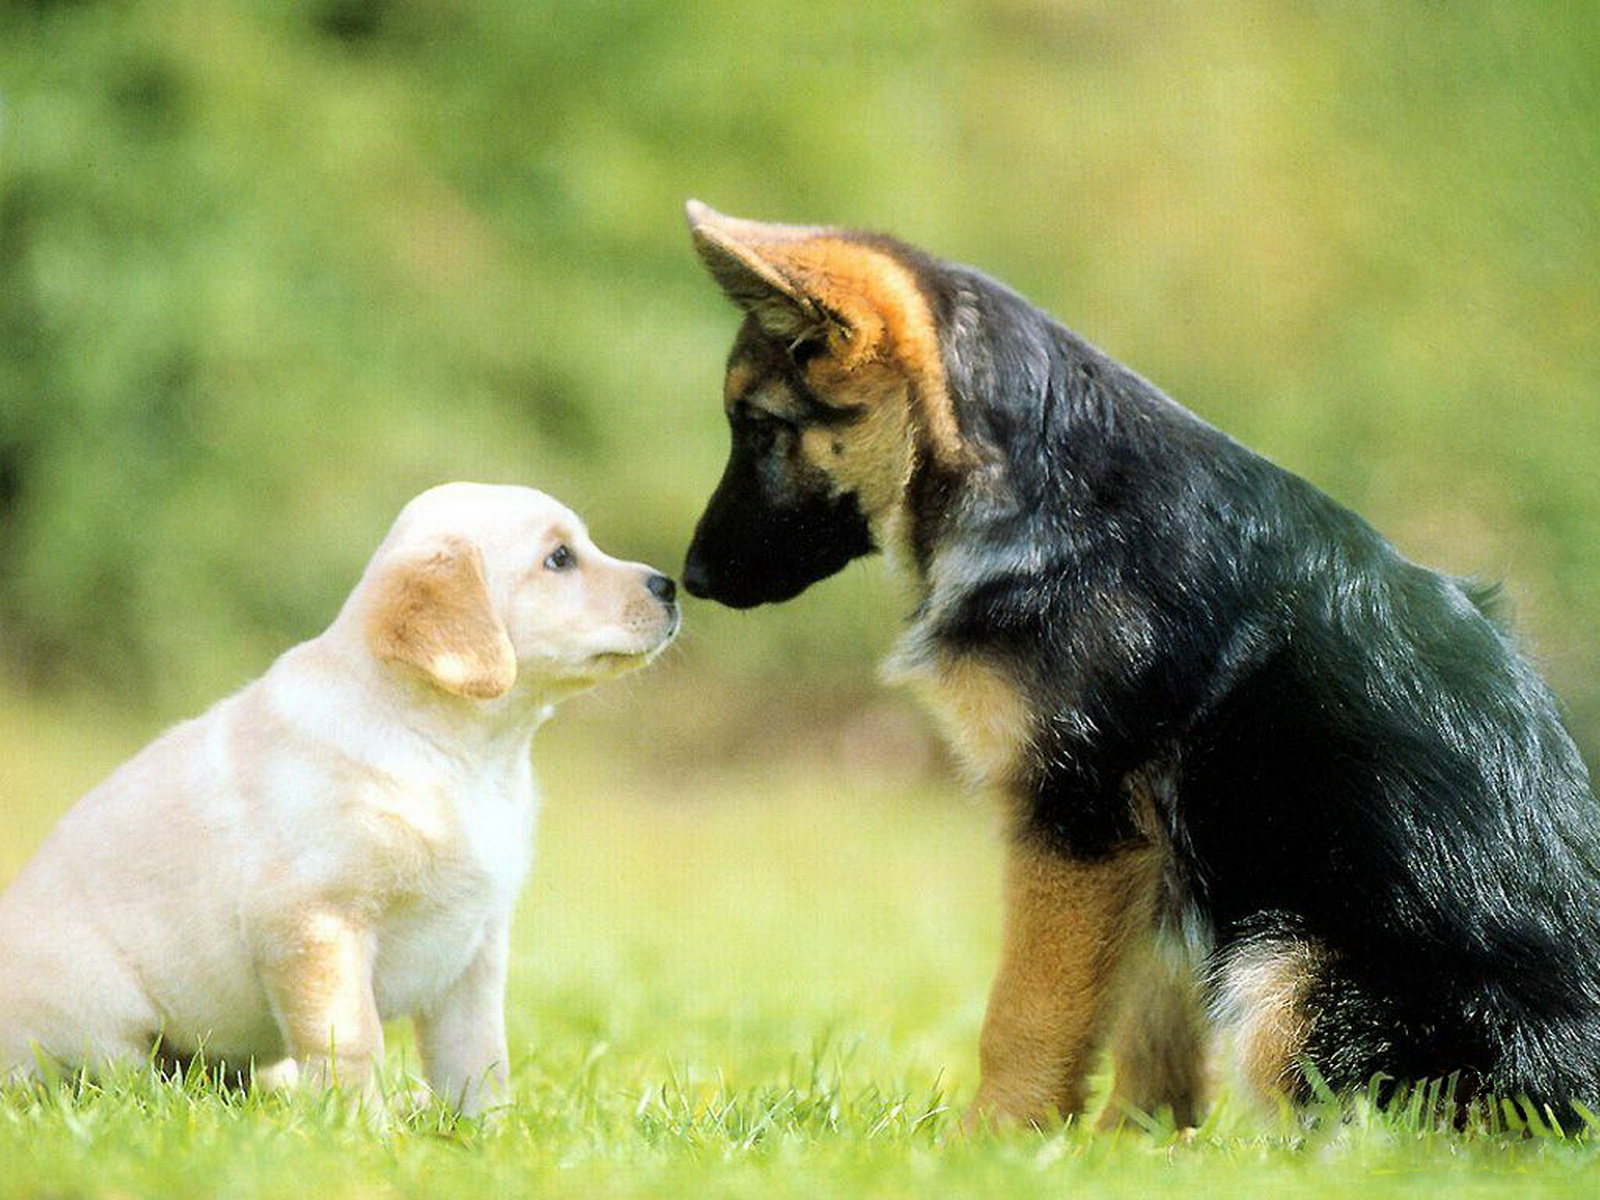 dogs care and affection amongst dogs love contrast cute dogs dogs in 1600x1200